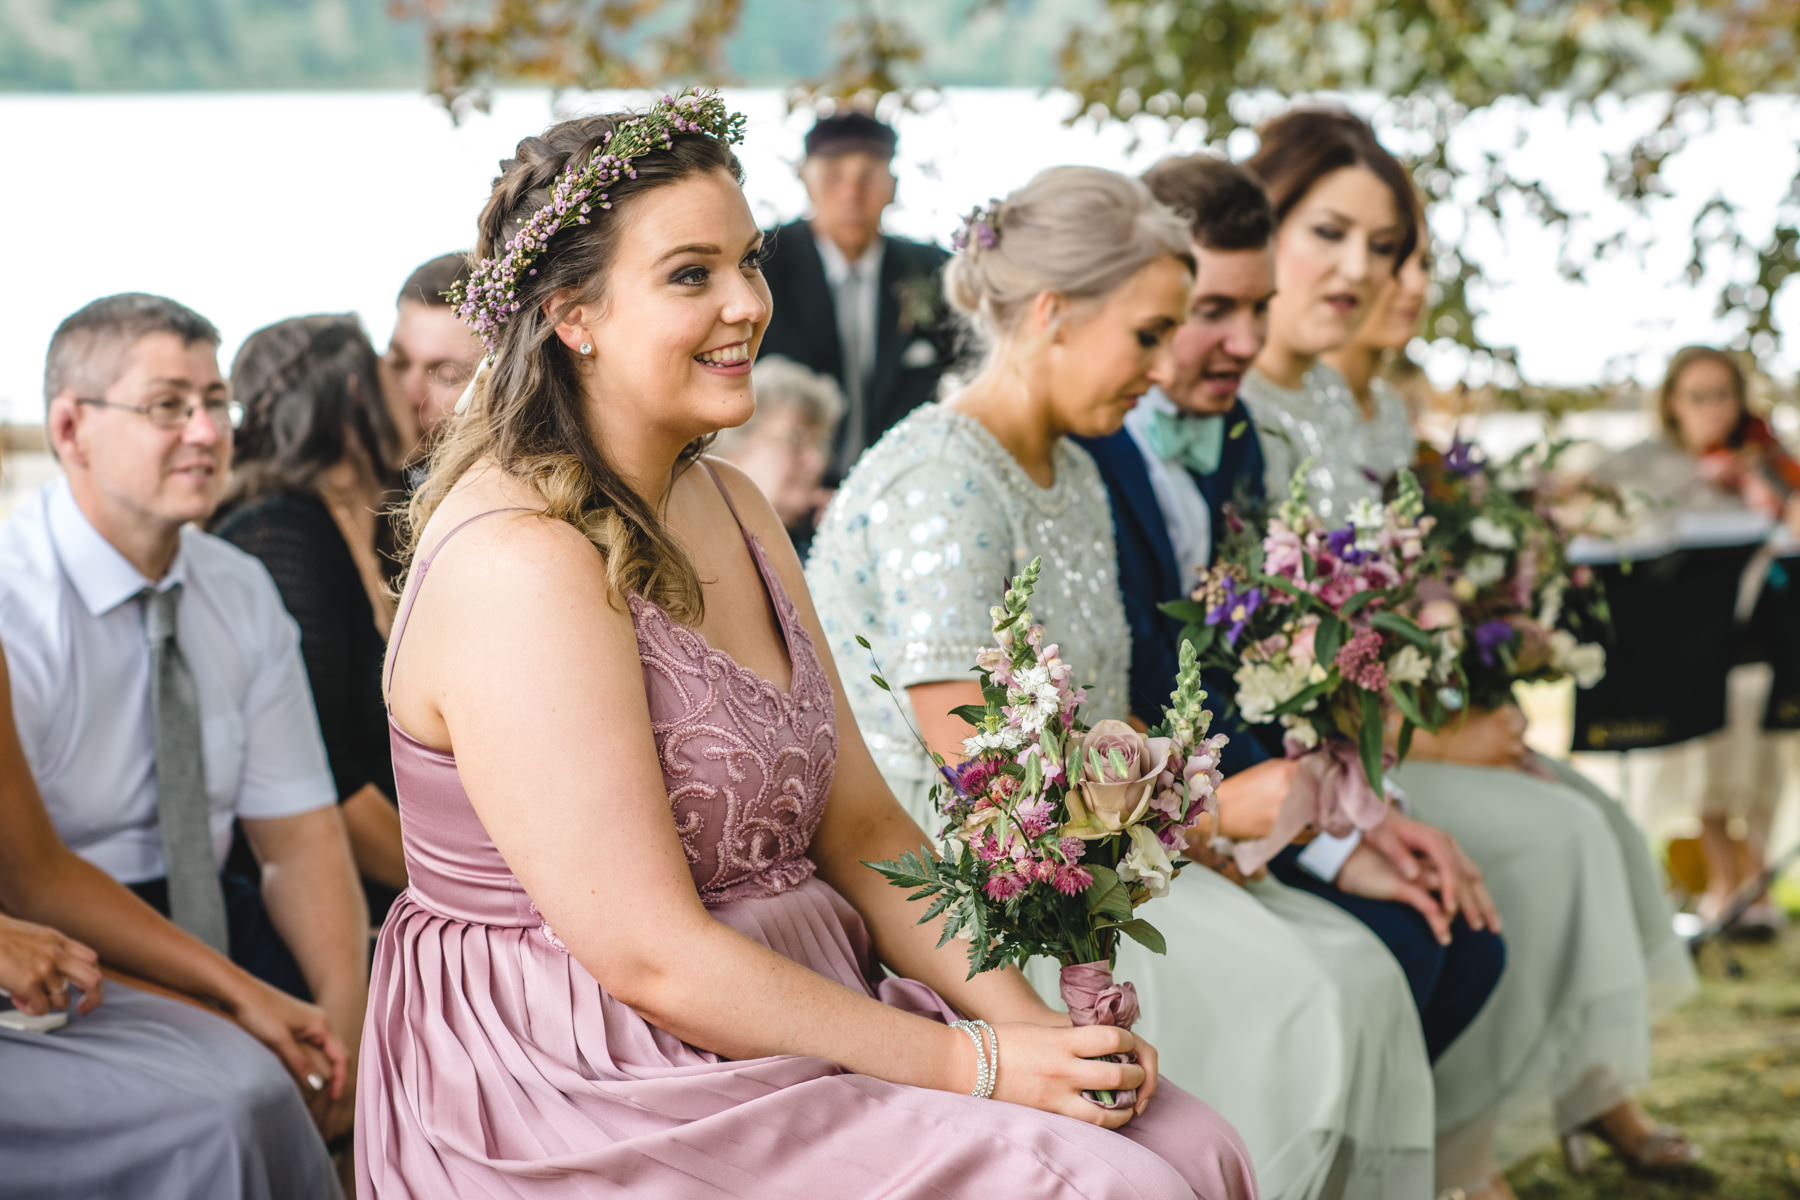 pink bridesmaid dress and flower crown